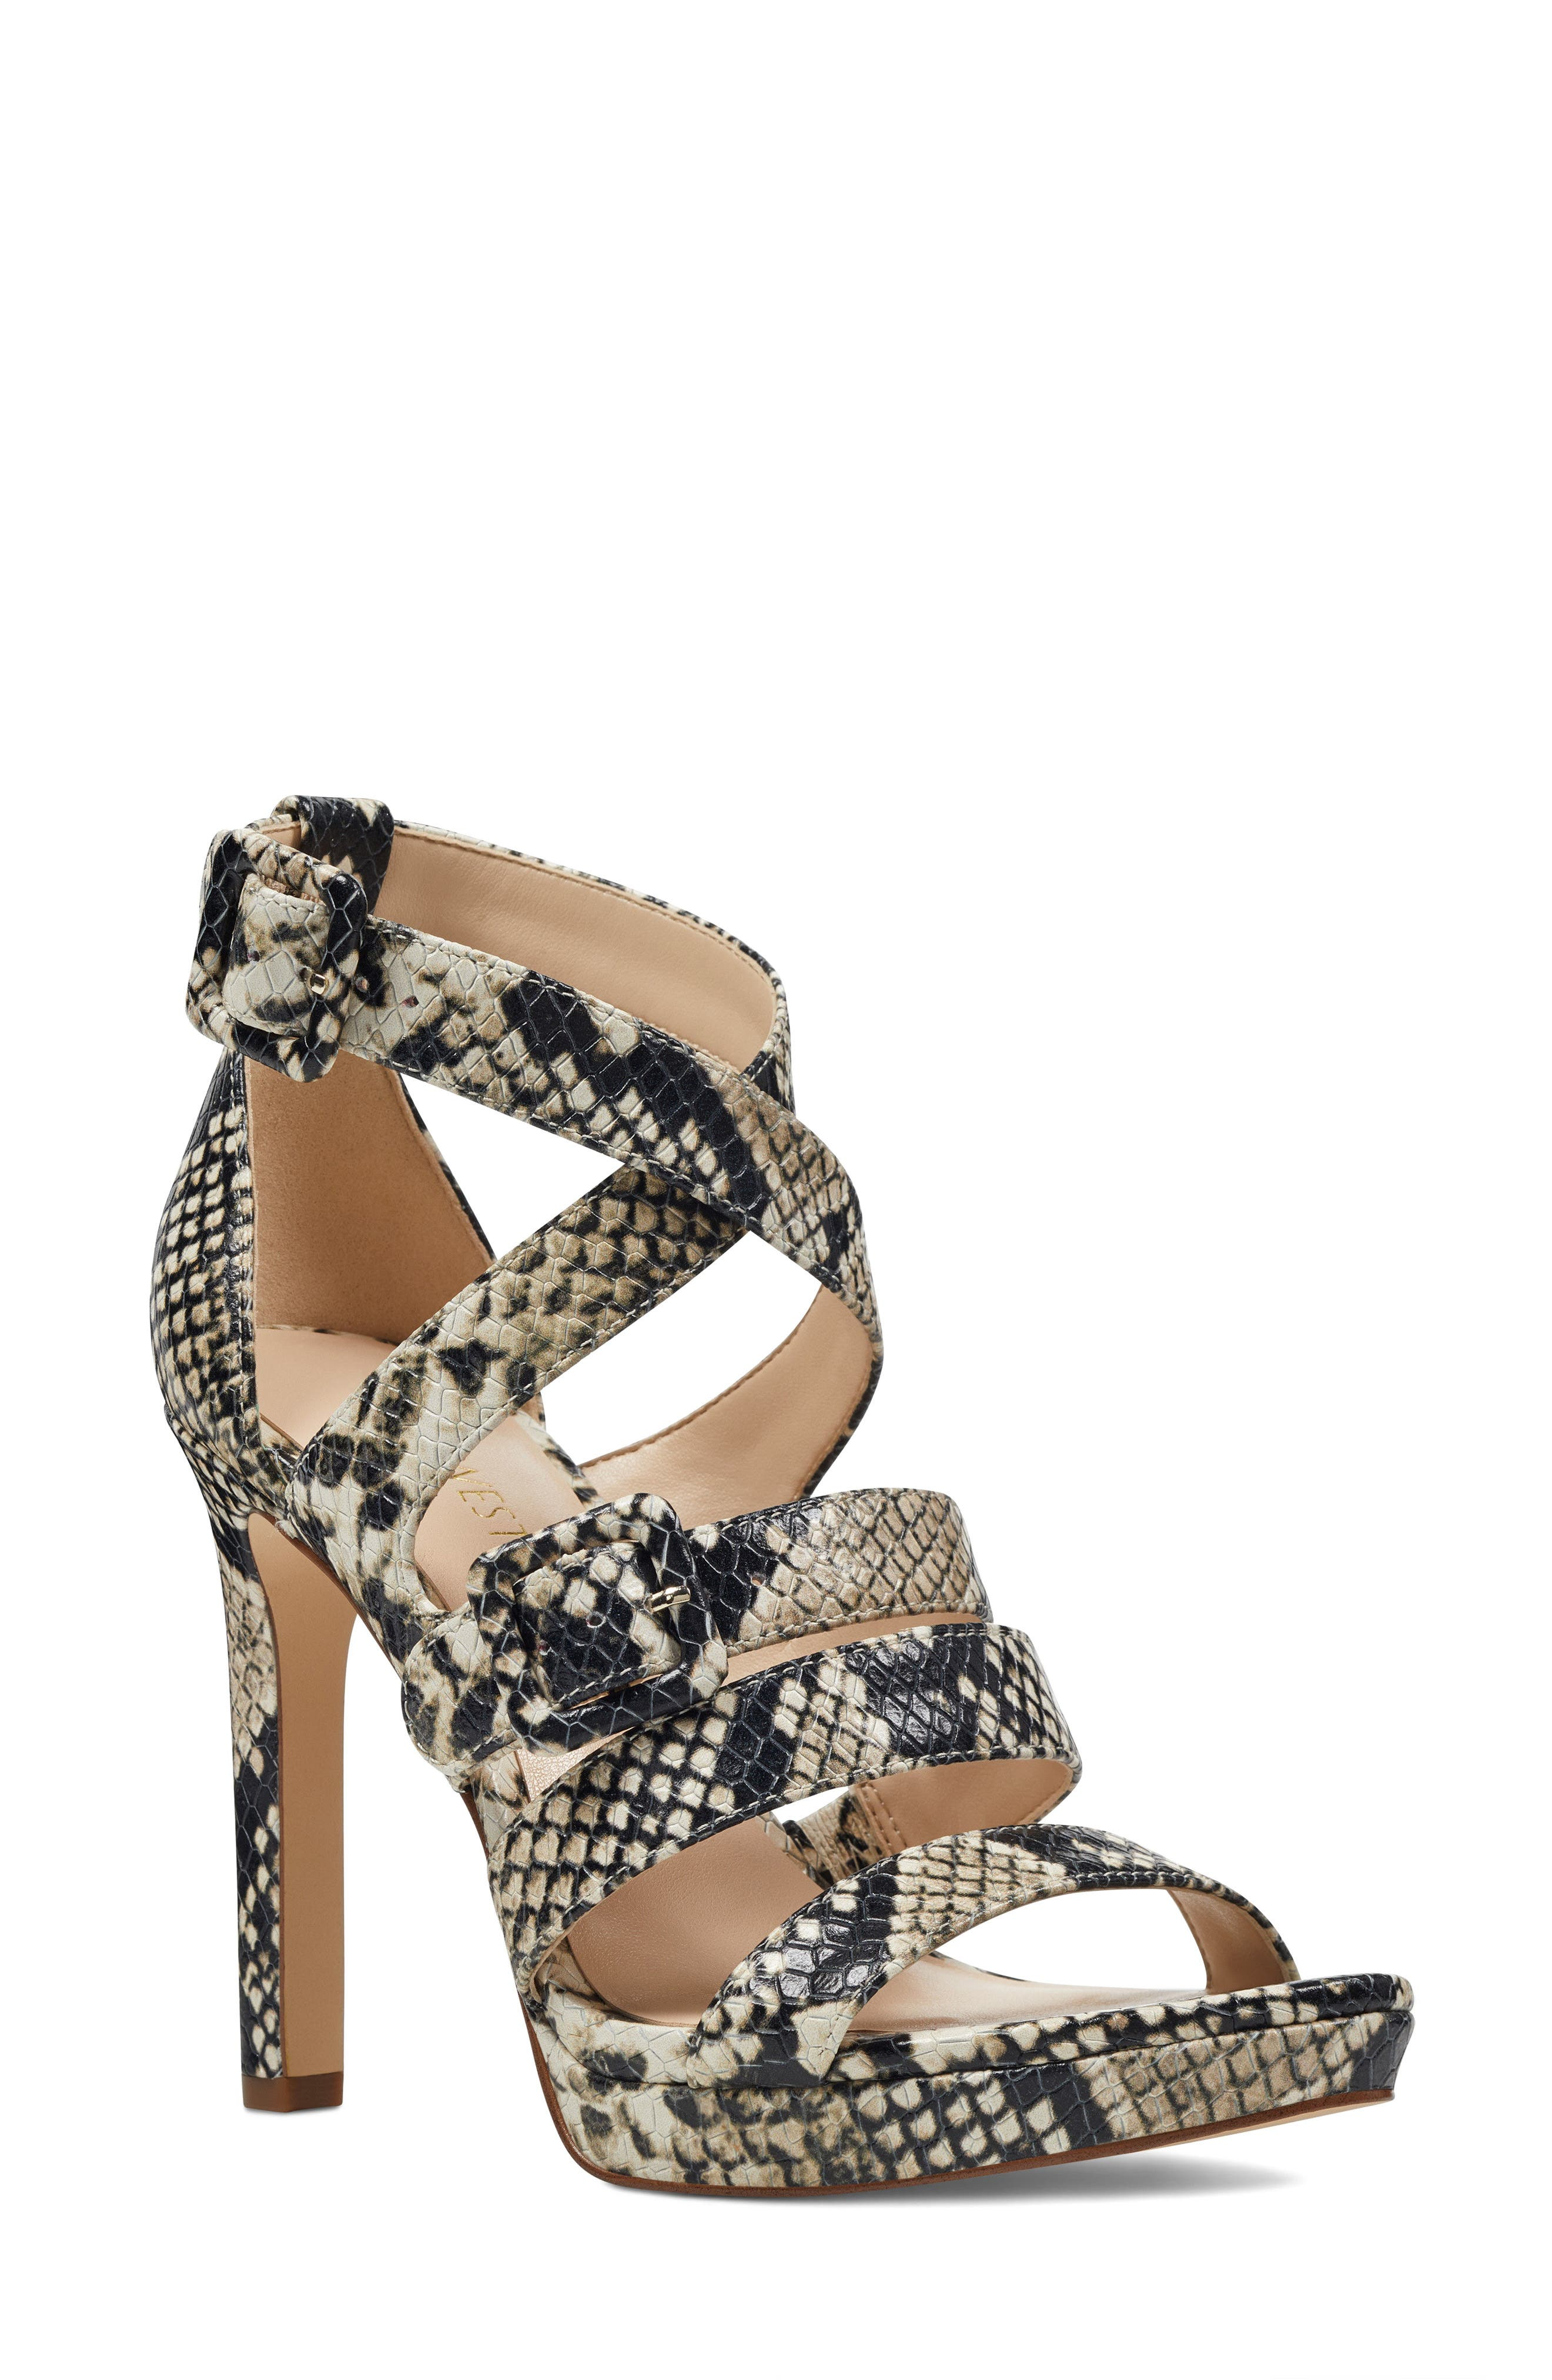 Tarykah Strappy Sandal,                         Main,                         color, Off White Leather